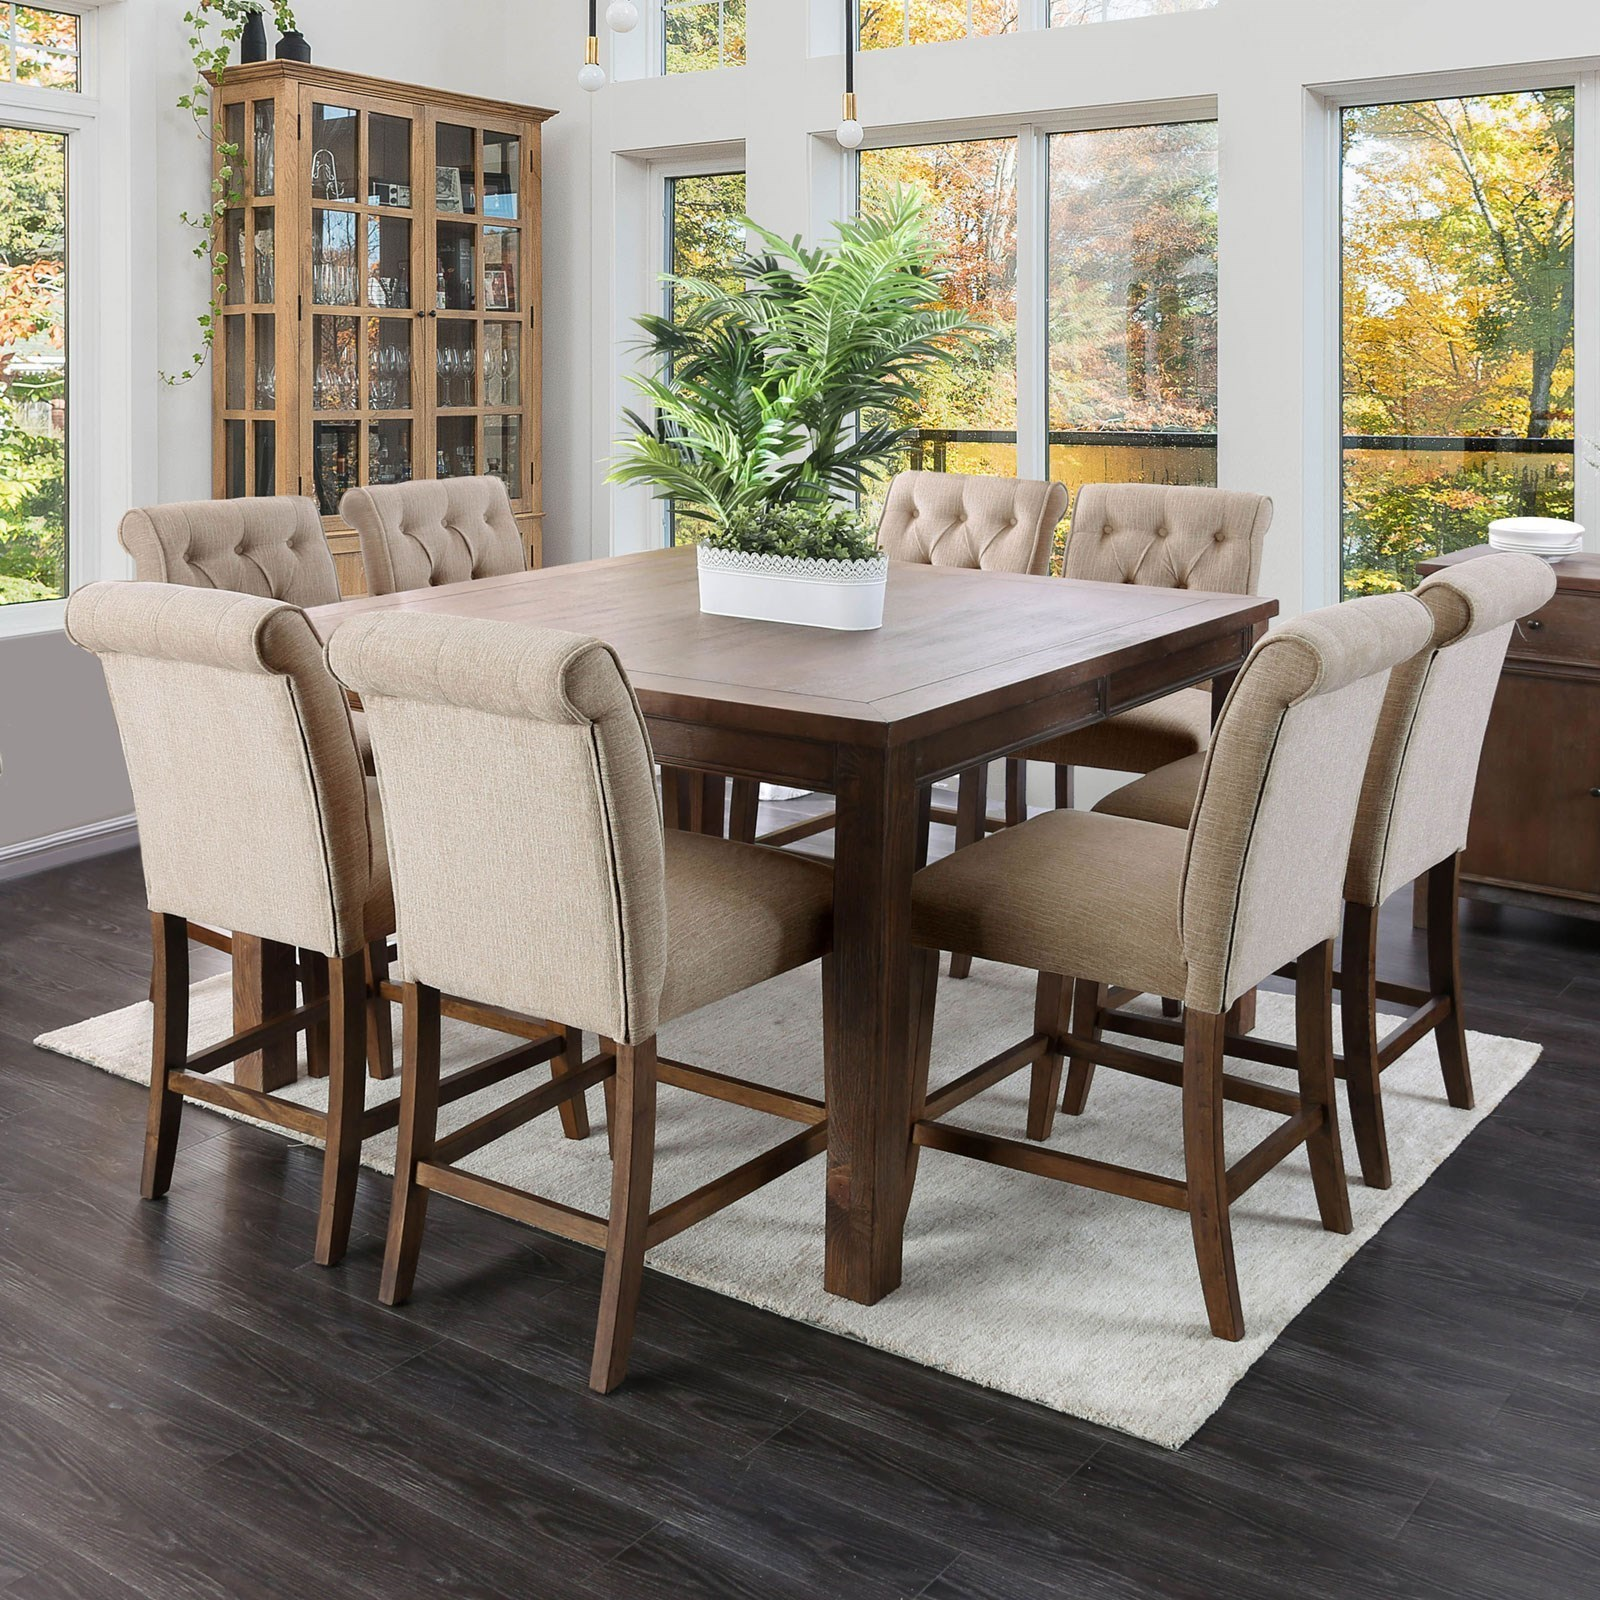 Ashley Furniture Metairie: Furniture Of America Sania III Rustic Counter Height Table